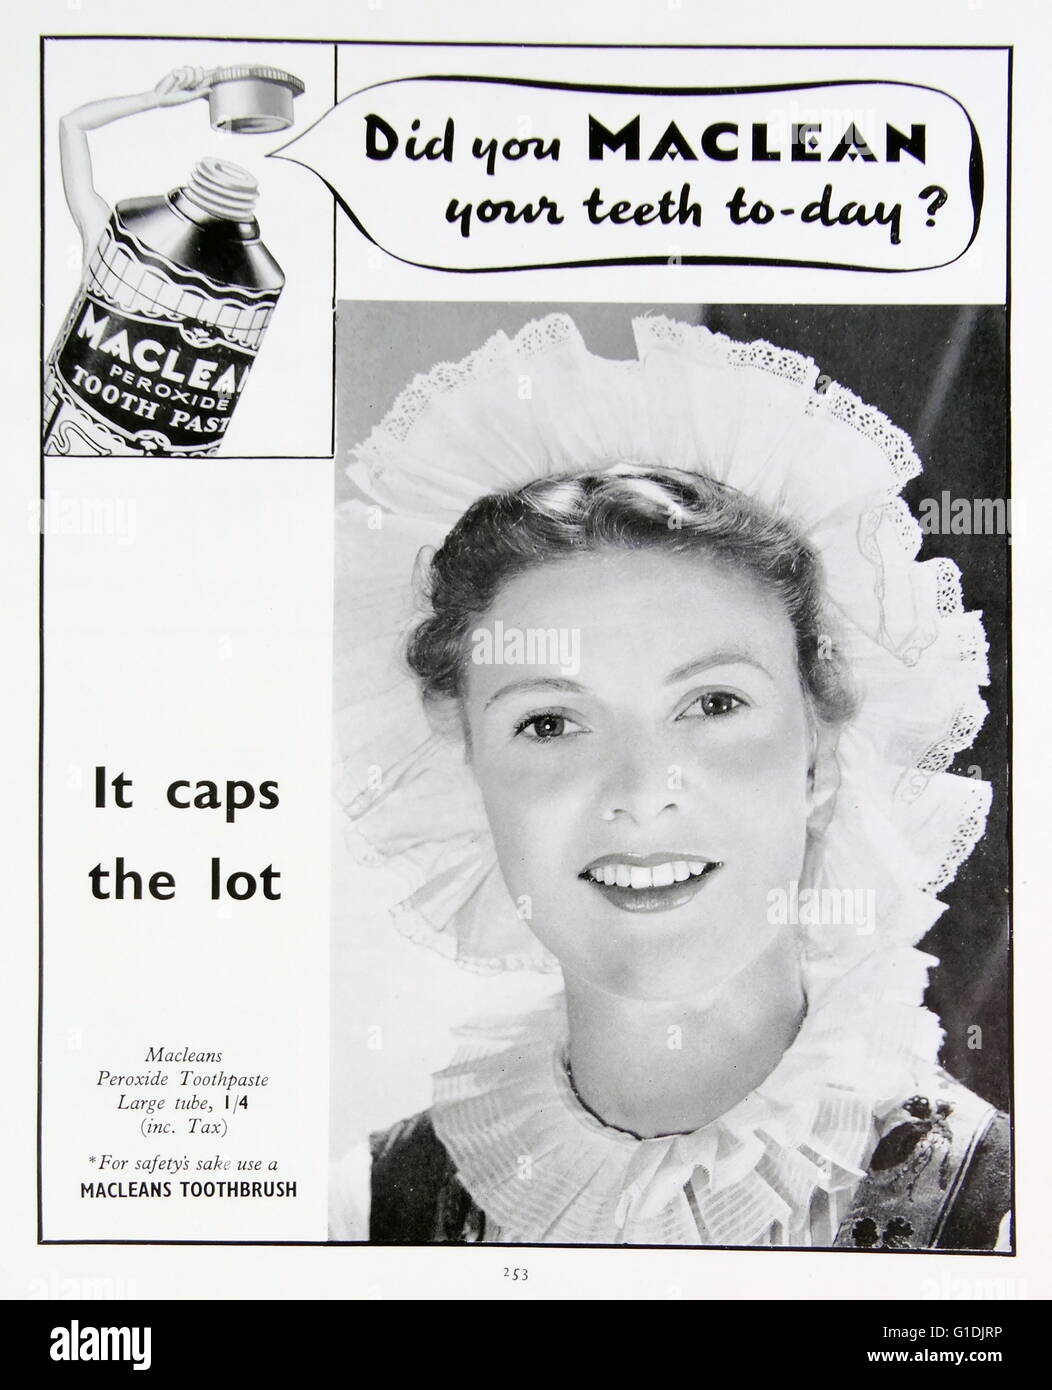 Advert for Maclean toothpaste - Stock Image